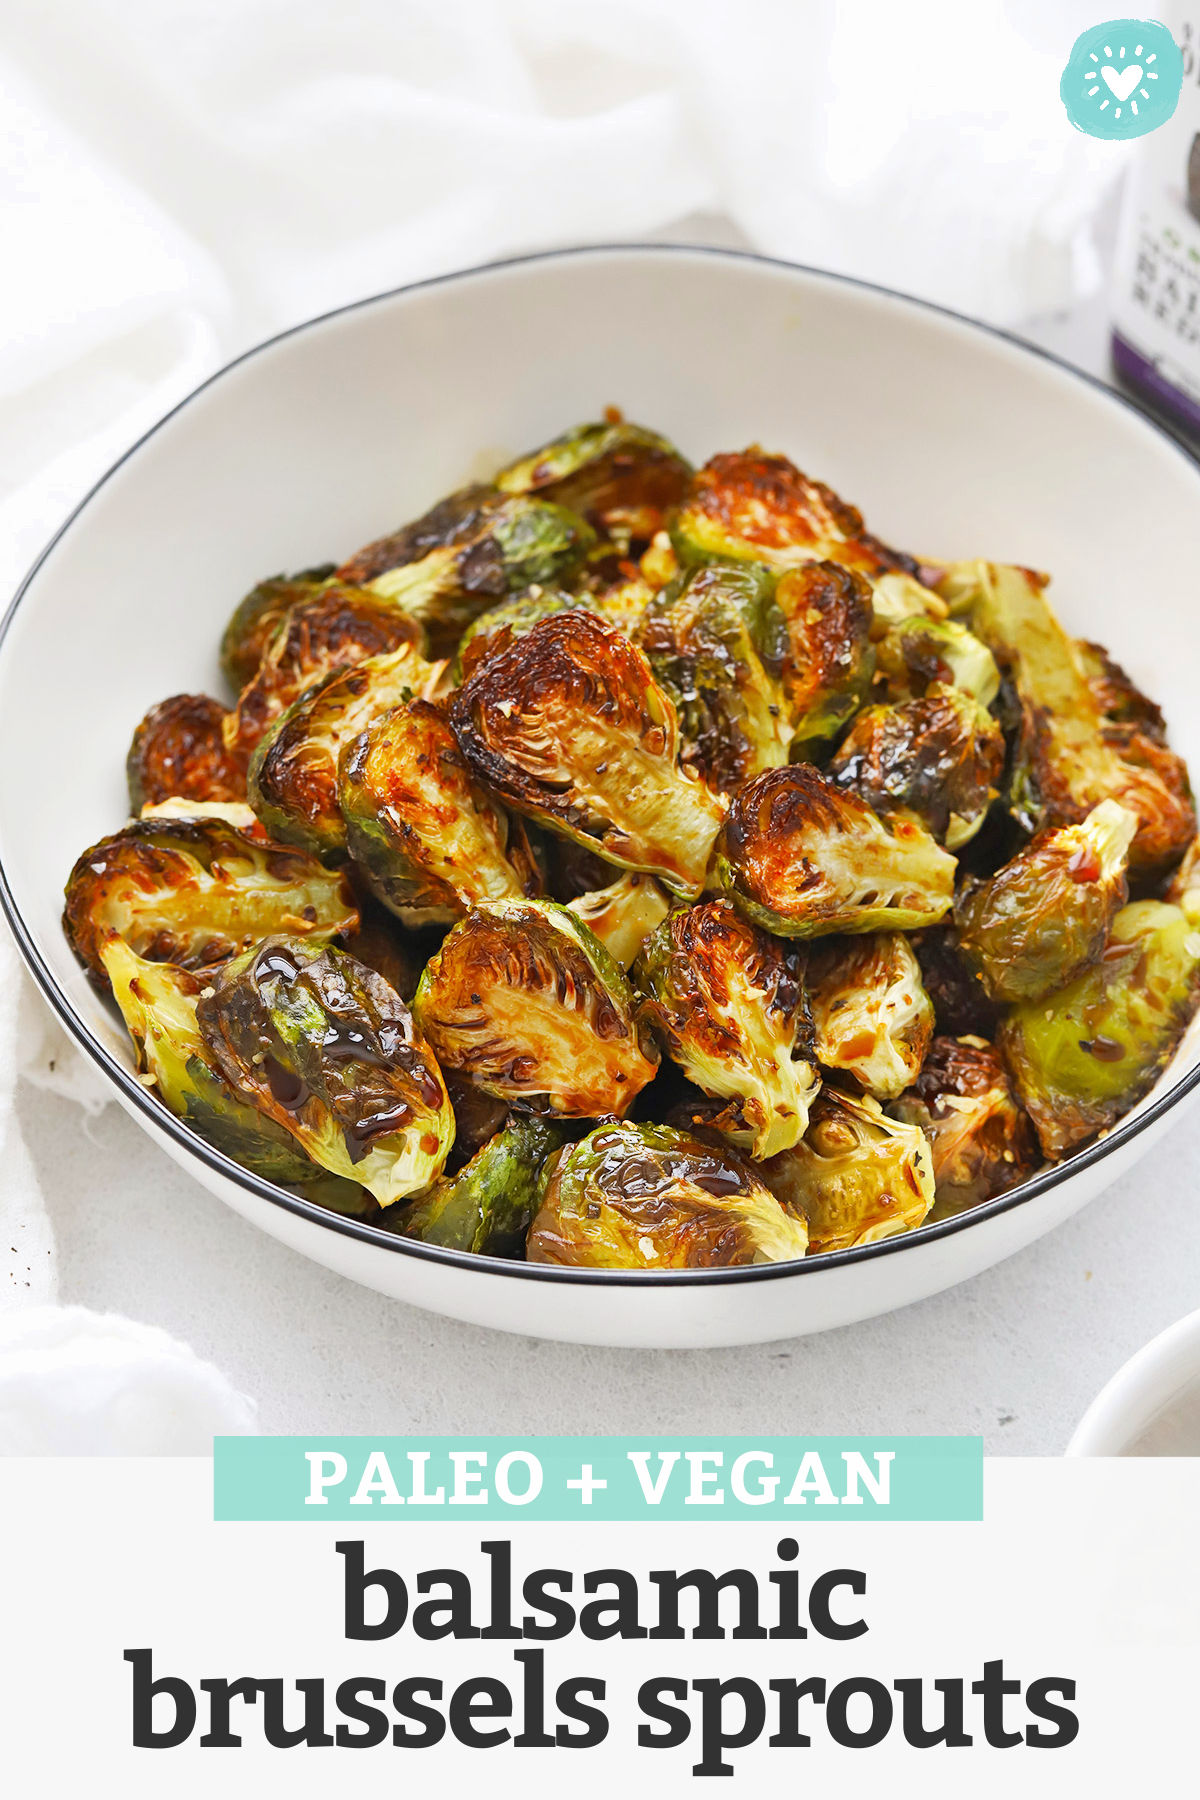 Balsamic Brussels Sprouts - Crispy roasted balsamic Brussels Sprouts with balsamic glaze make a delicious side dish you'll come back to again and again. (Paleo, Vegan) // Maple Balsamic Brussels Sprouts // Roasted Brussels Sprouts recipe // Thanksgiving side dish #paleo #vegan #brusselssprouts #sidedish #thanksgiving